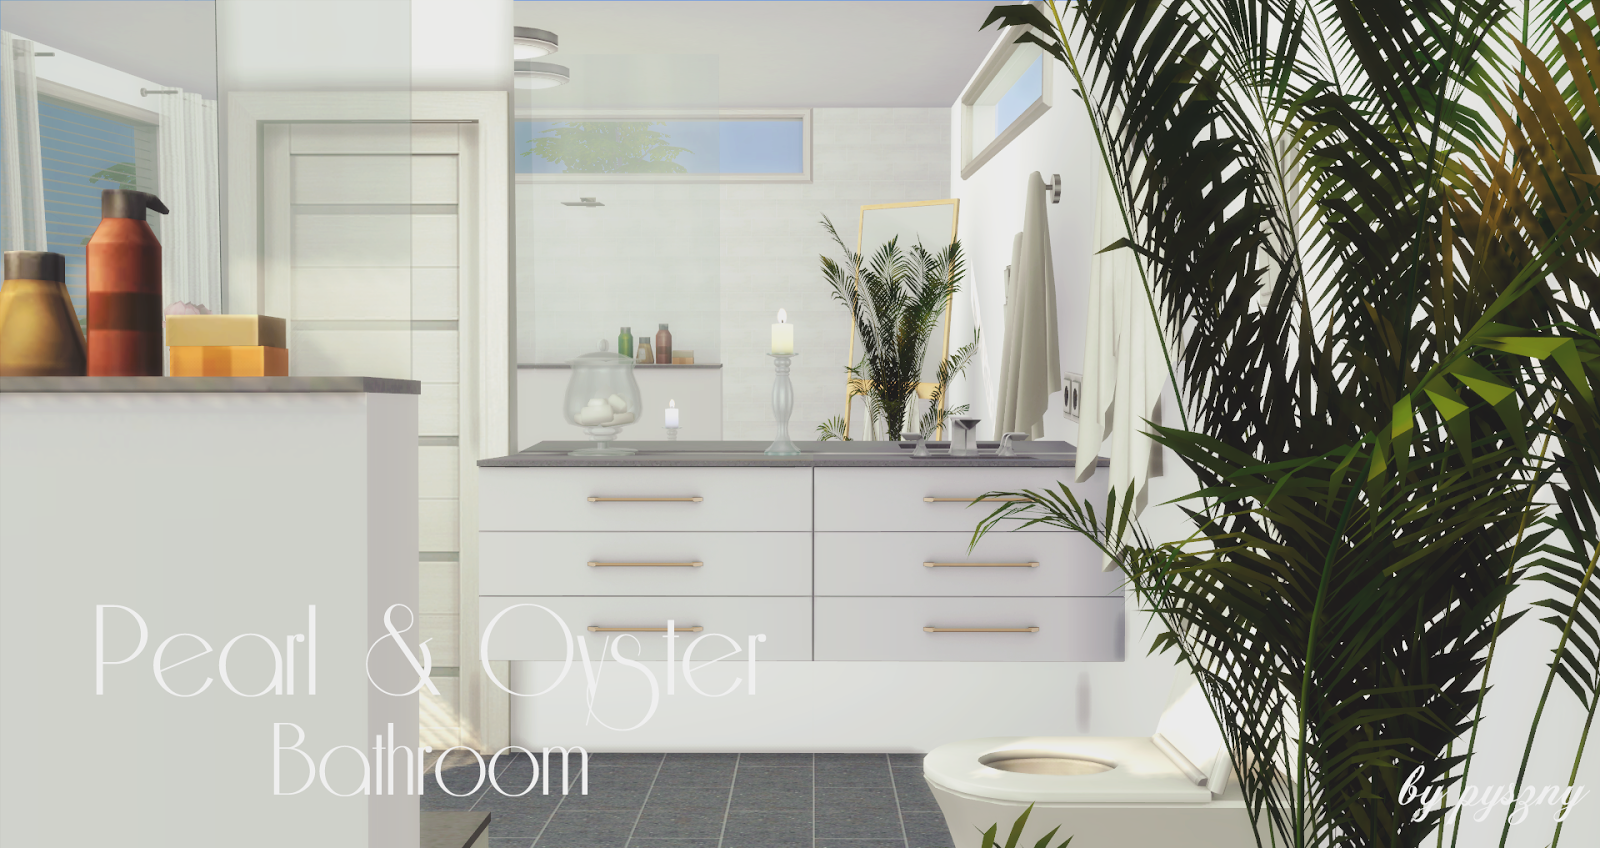 Peral & Oyster Bathroom *NEW SET* on